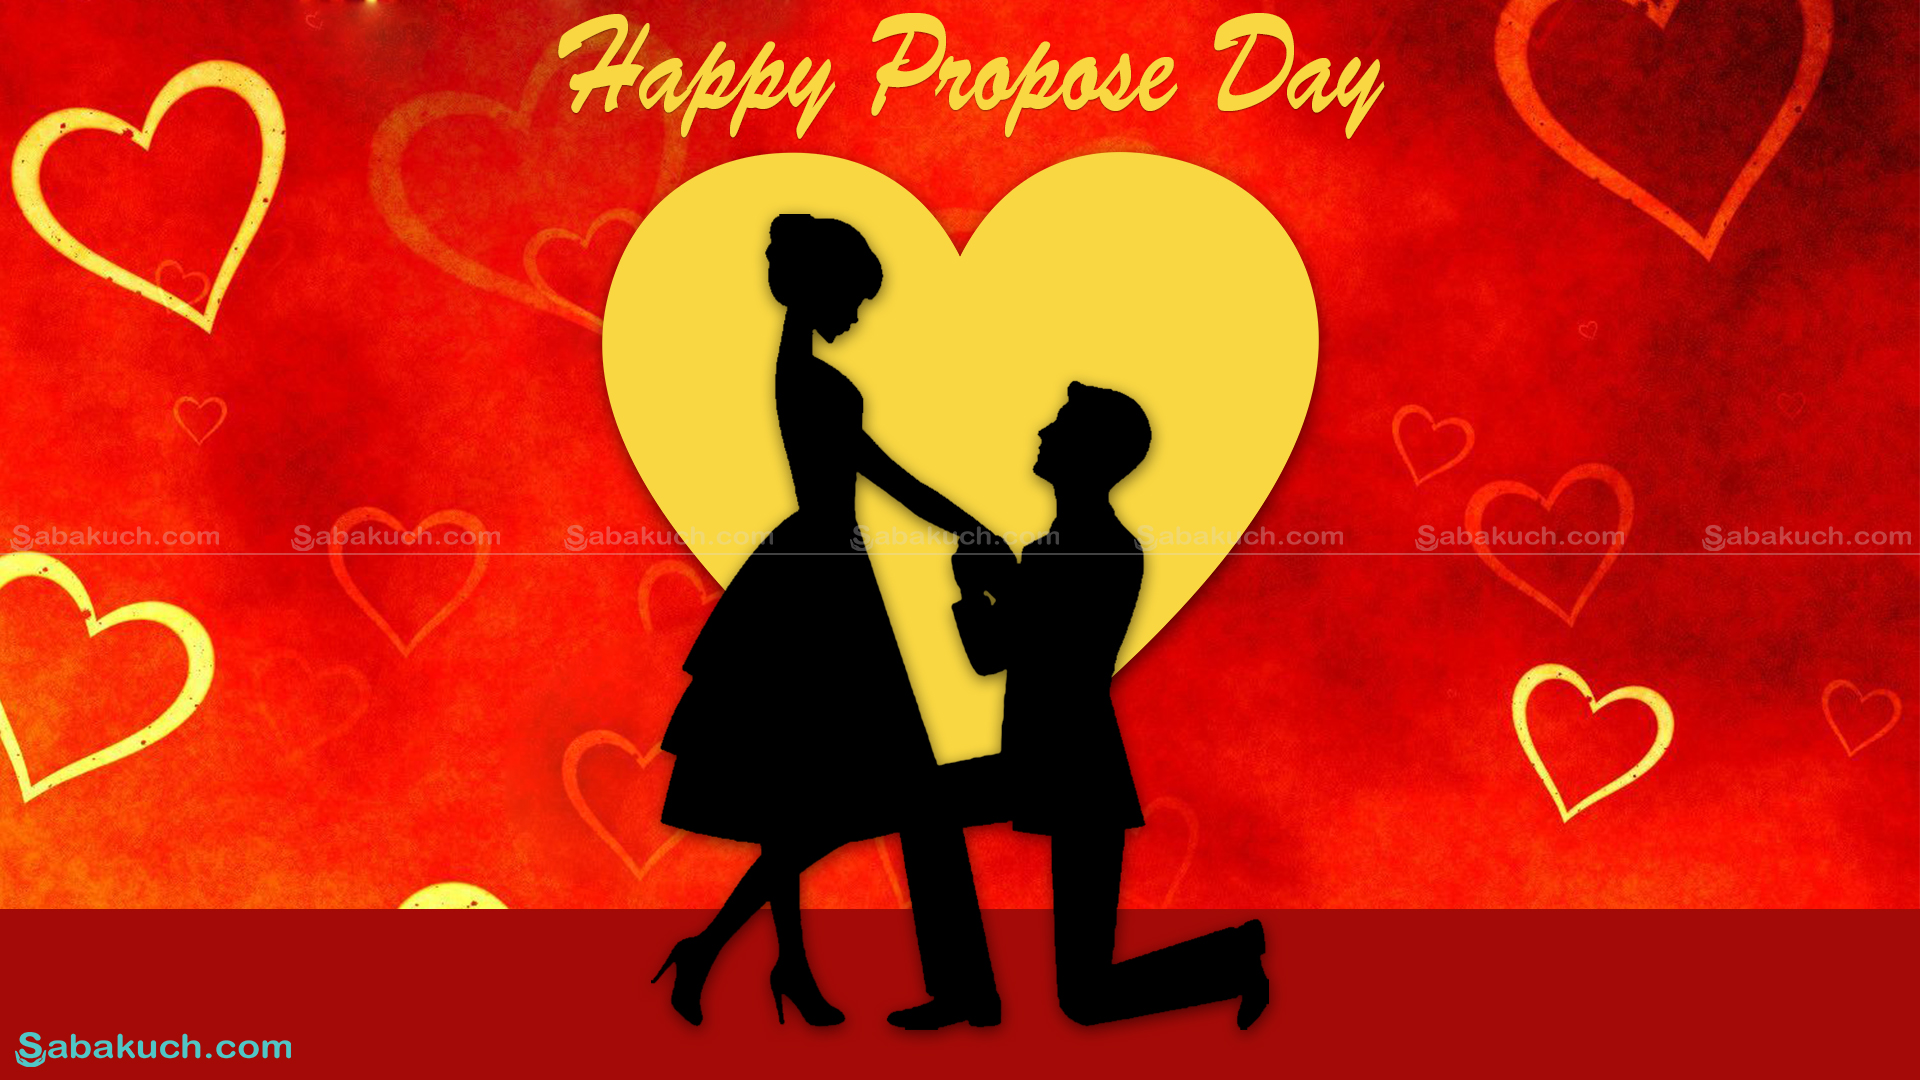 Propose Day feb.